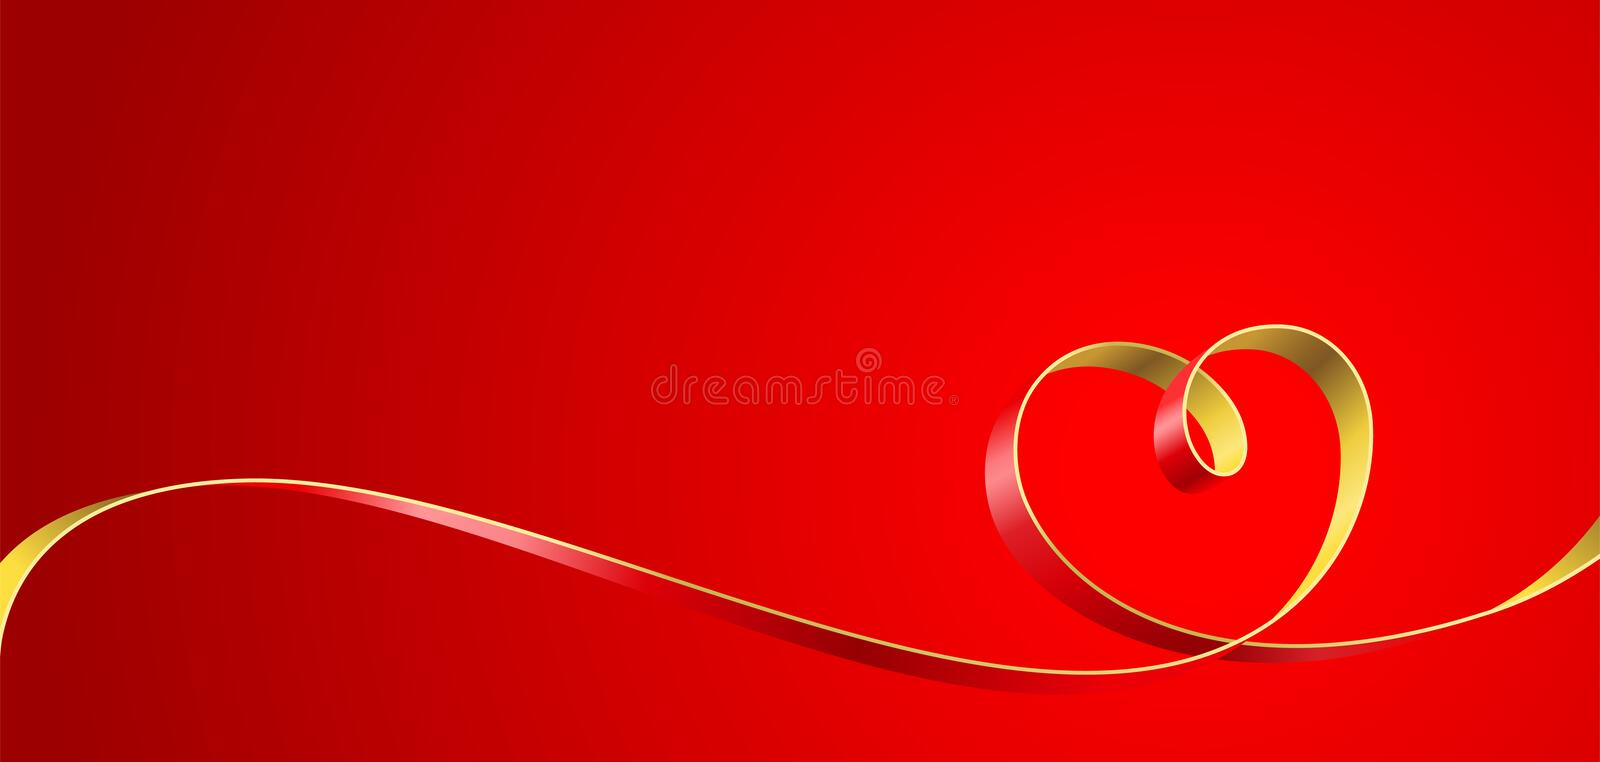 Heart. Ribbon entwined in a heart on a red background. Vector illustration royalty free illustration